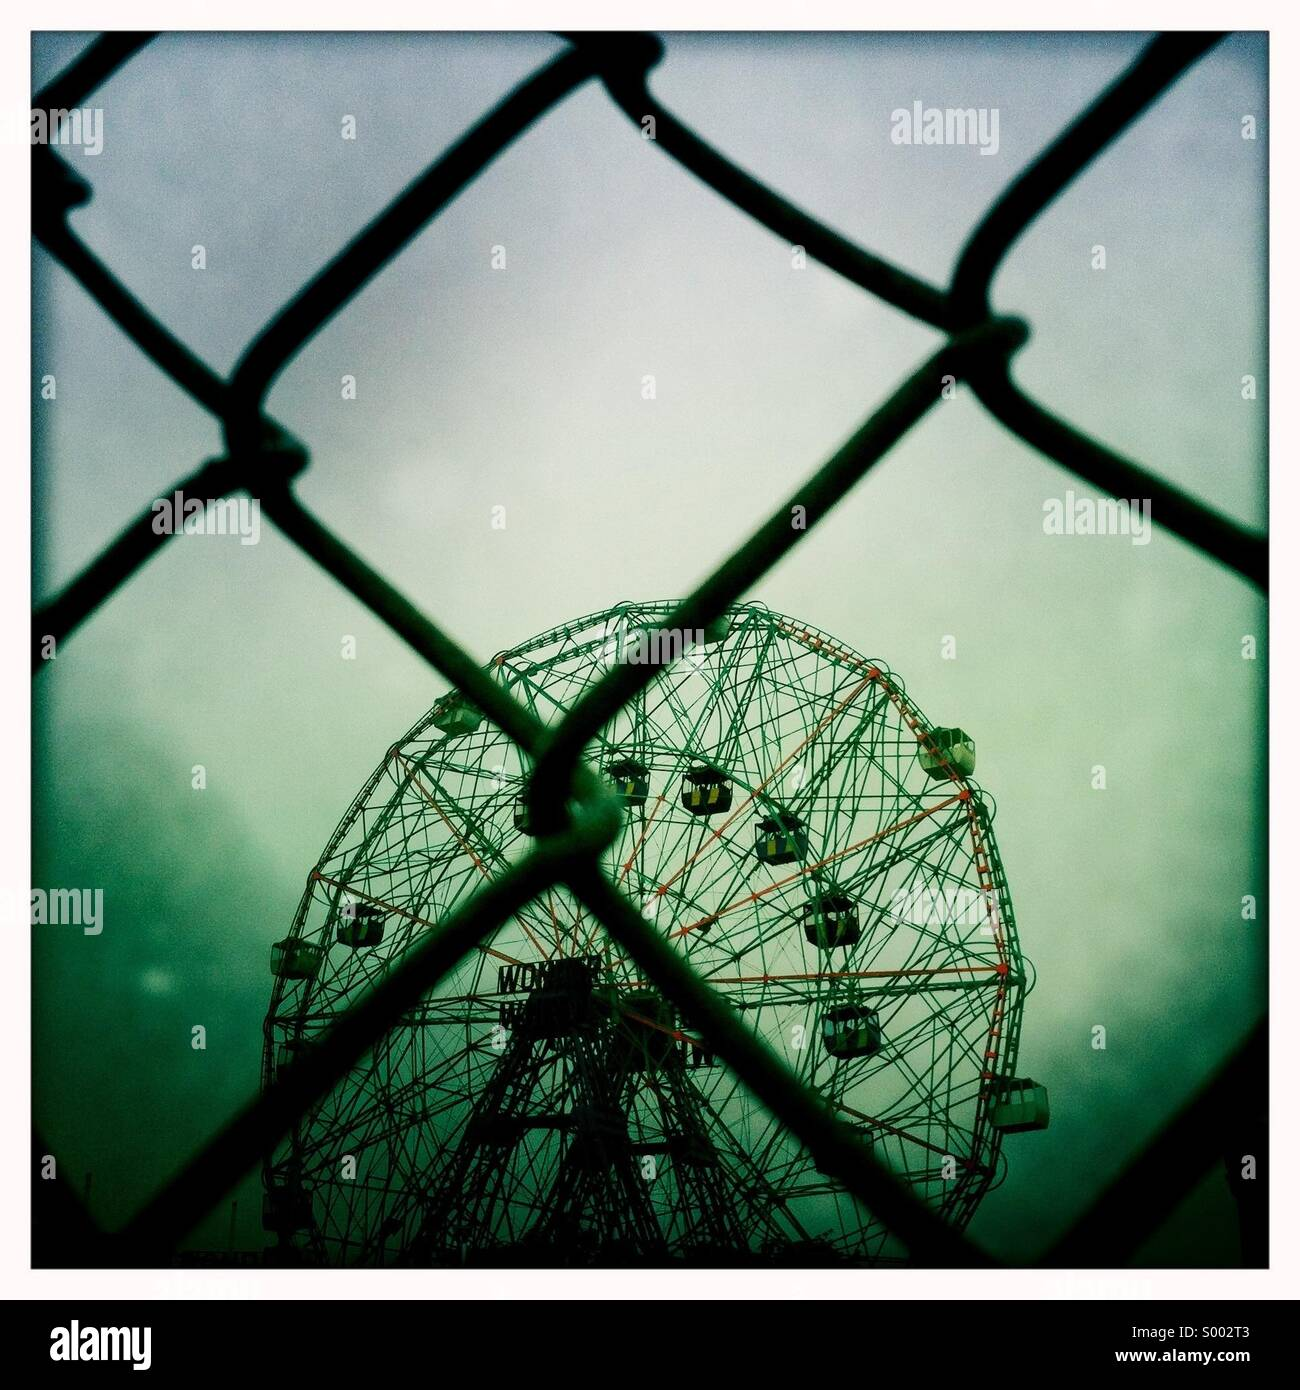 Amusement park Ferris wheel closed behind a gate - Stock Image